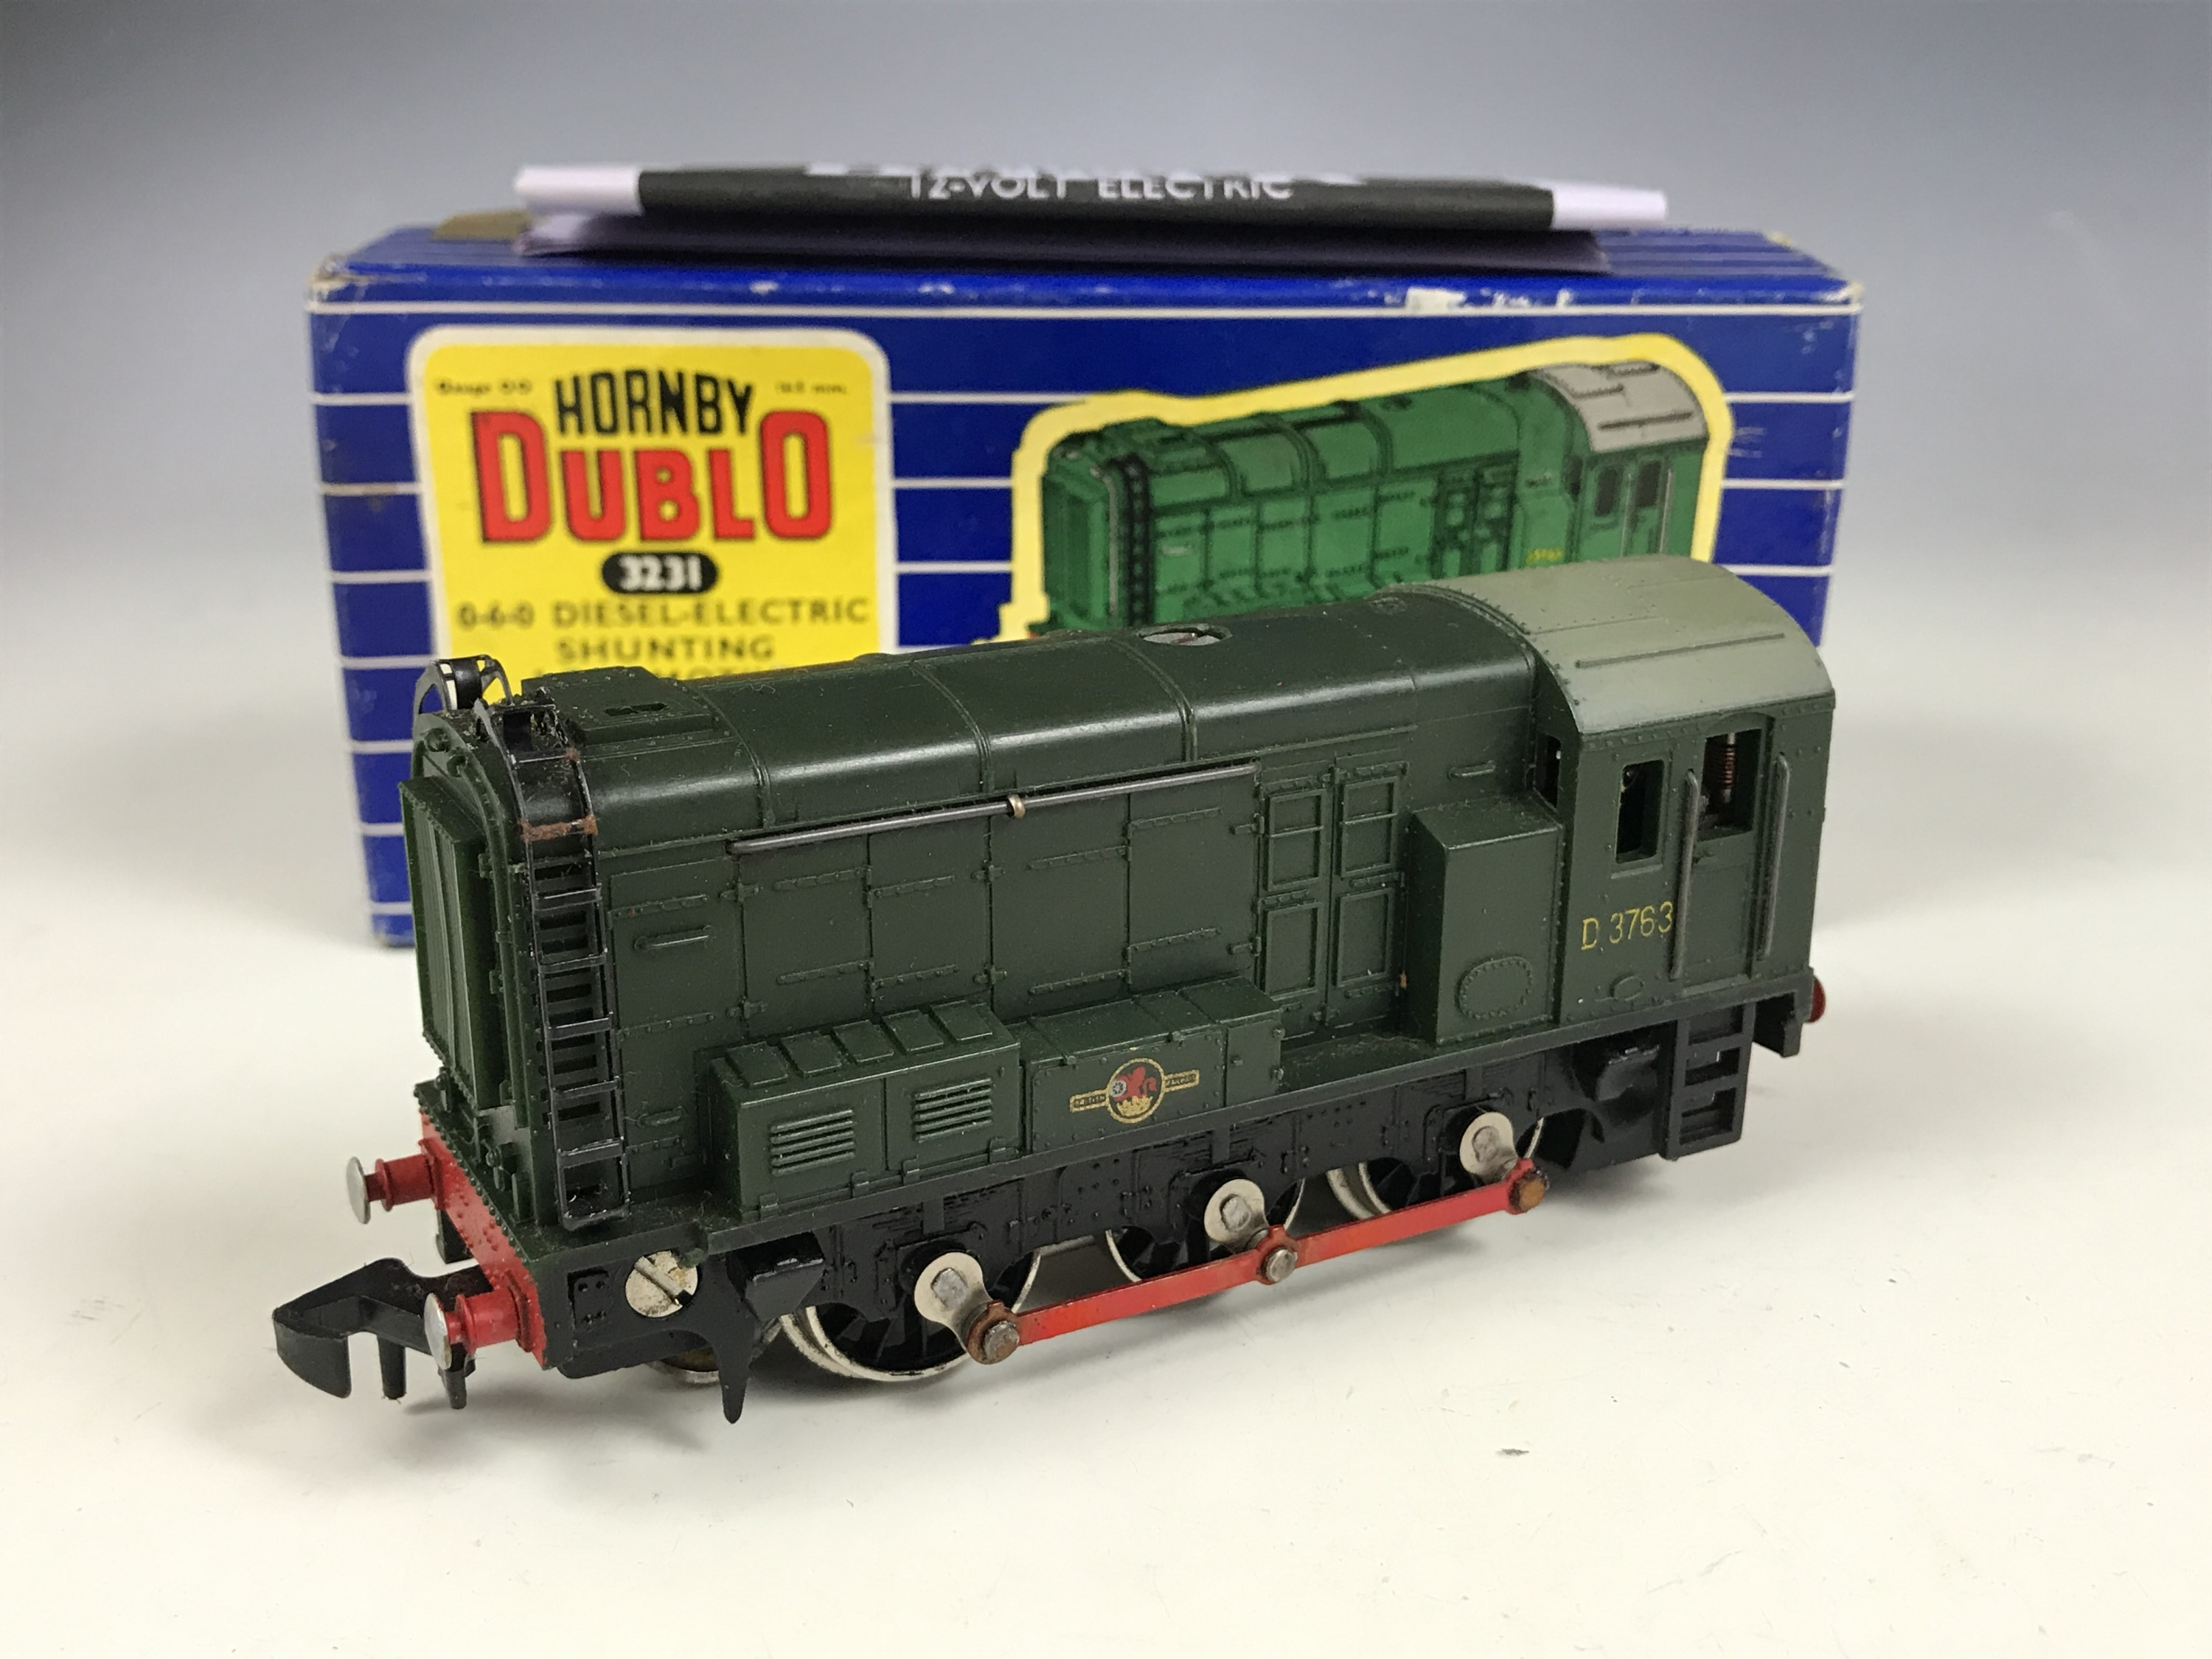 Lot 58 - A Hornby Dublo electric OO Gauge Railway No. 3231 0-6-0 Diesel-Electric Shunting Locomotive,